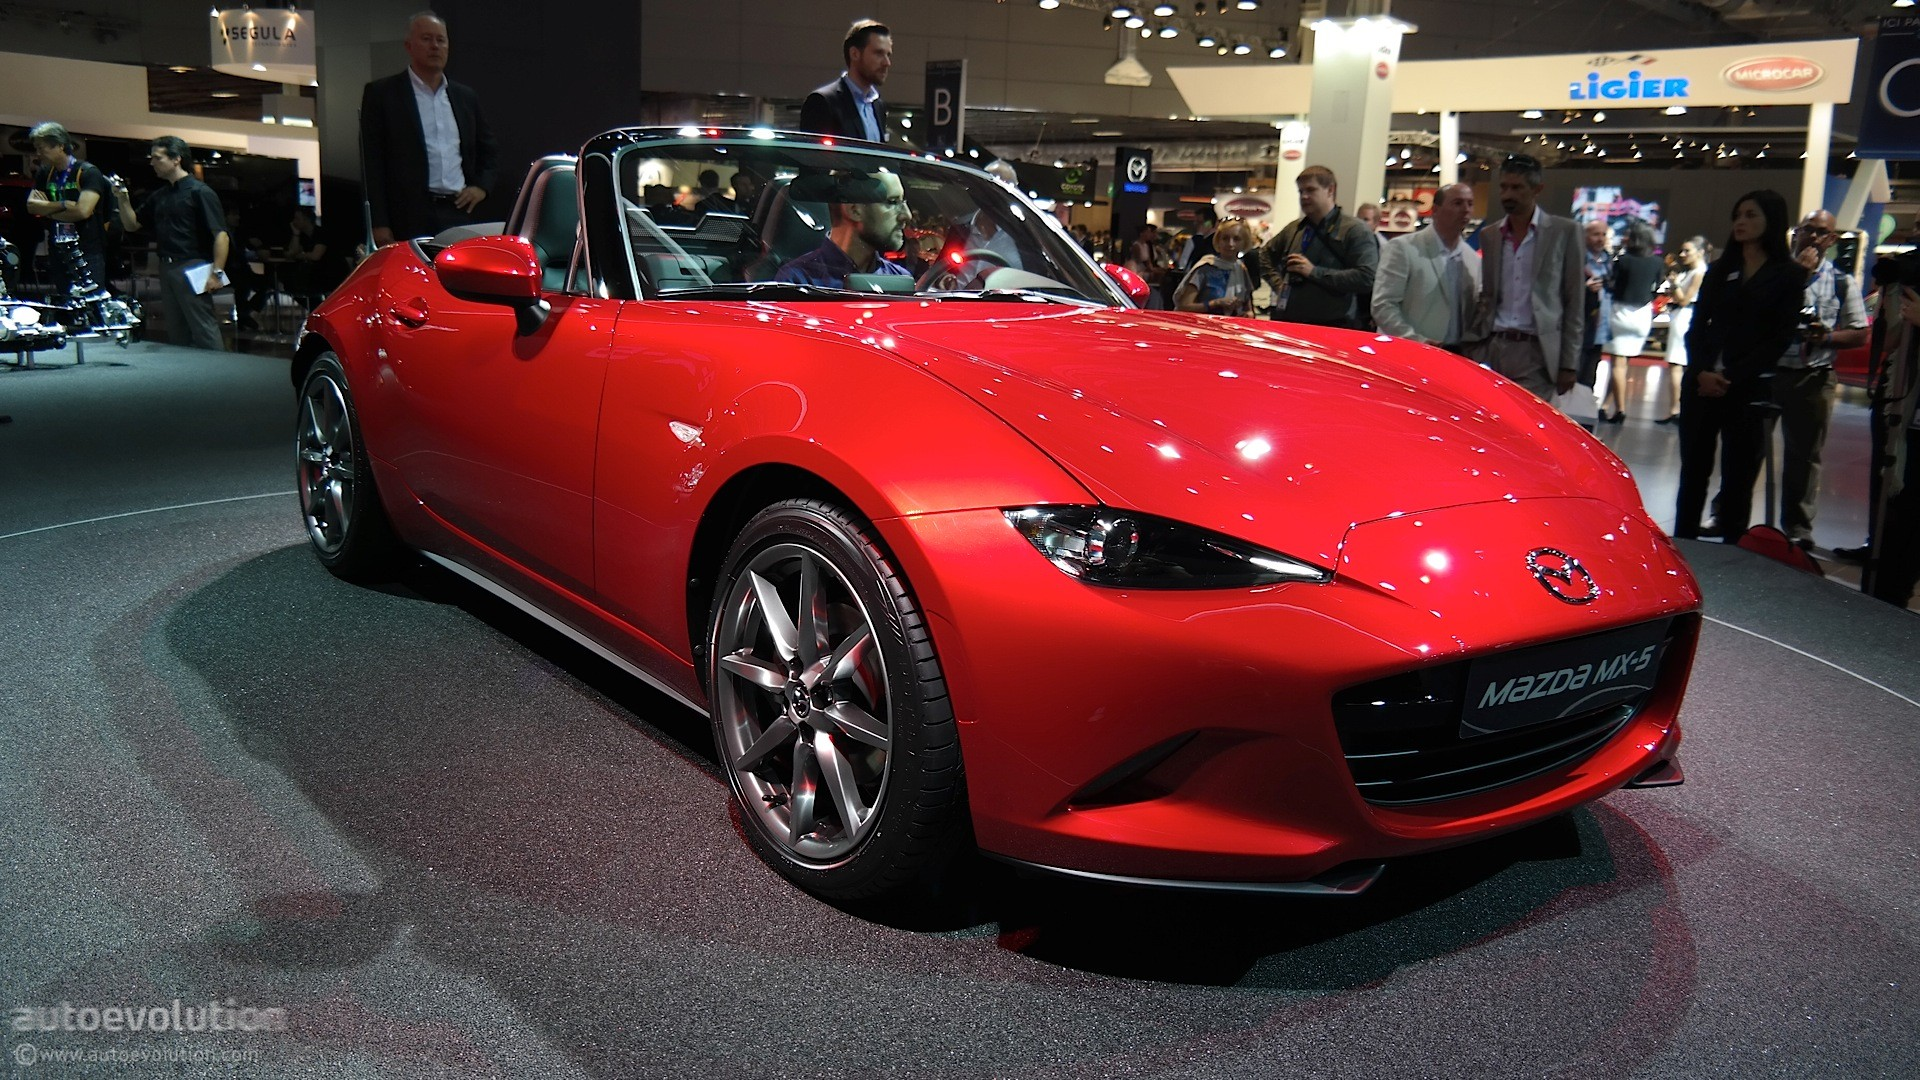 UPDATE: 2016 Mazda MX-5 / Miata Specifications Break Cover: 129 HP ...